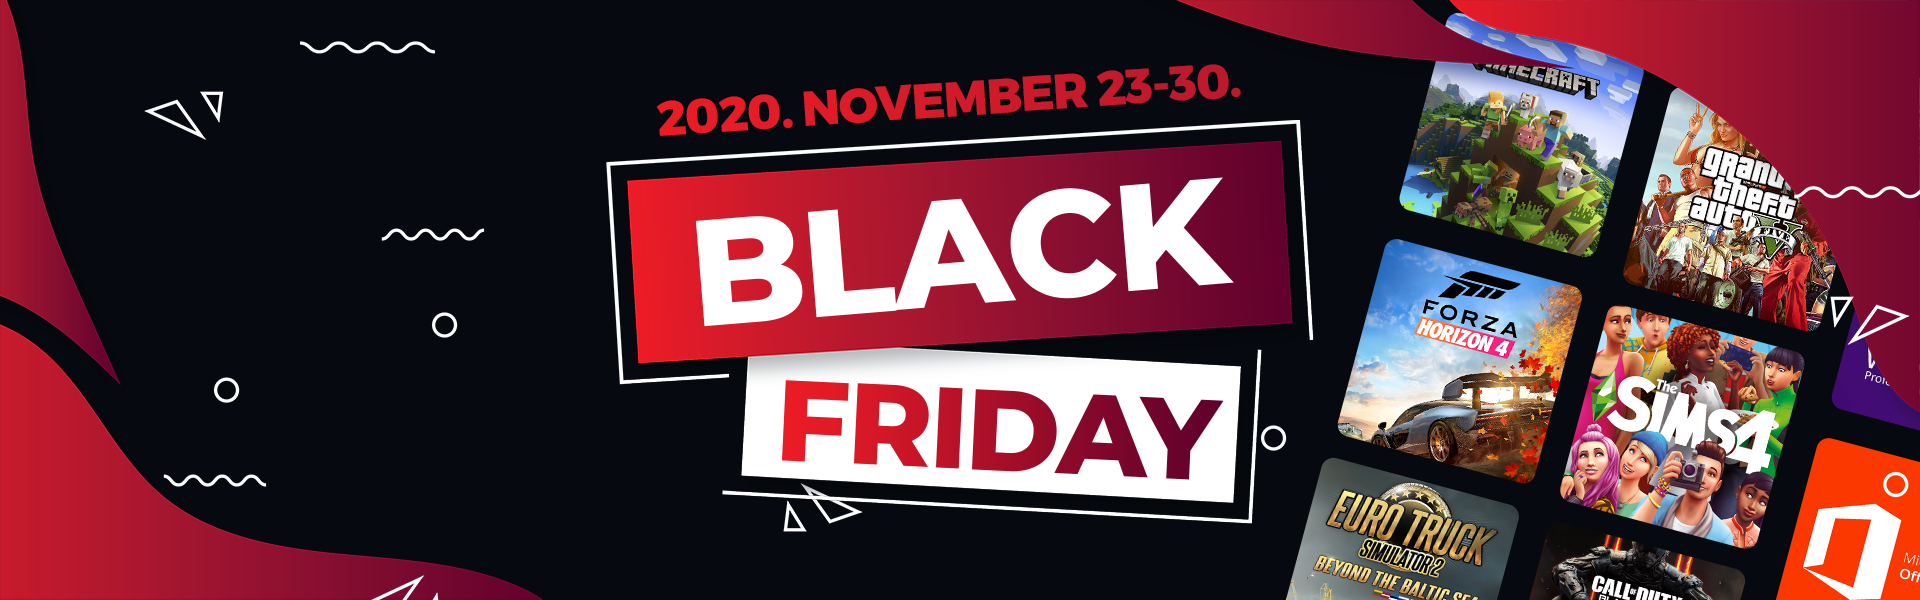 2020 BlackFriday